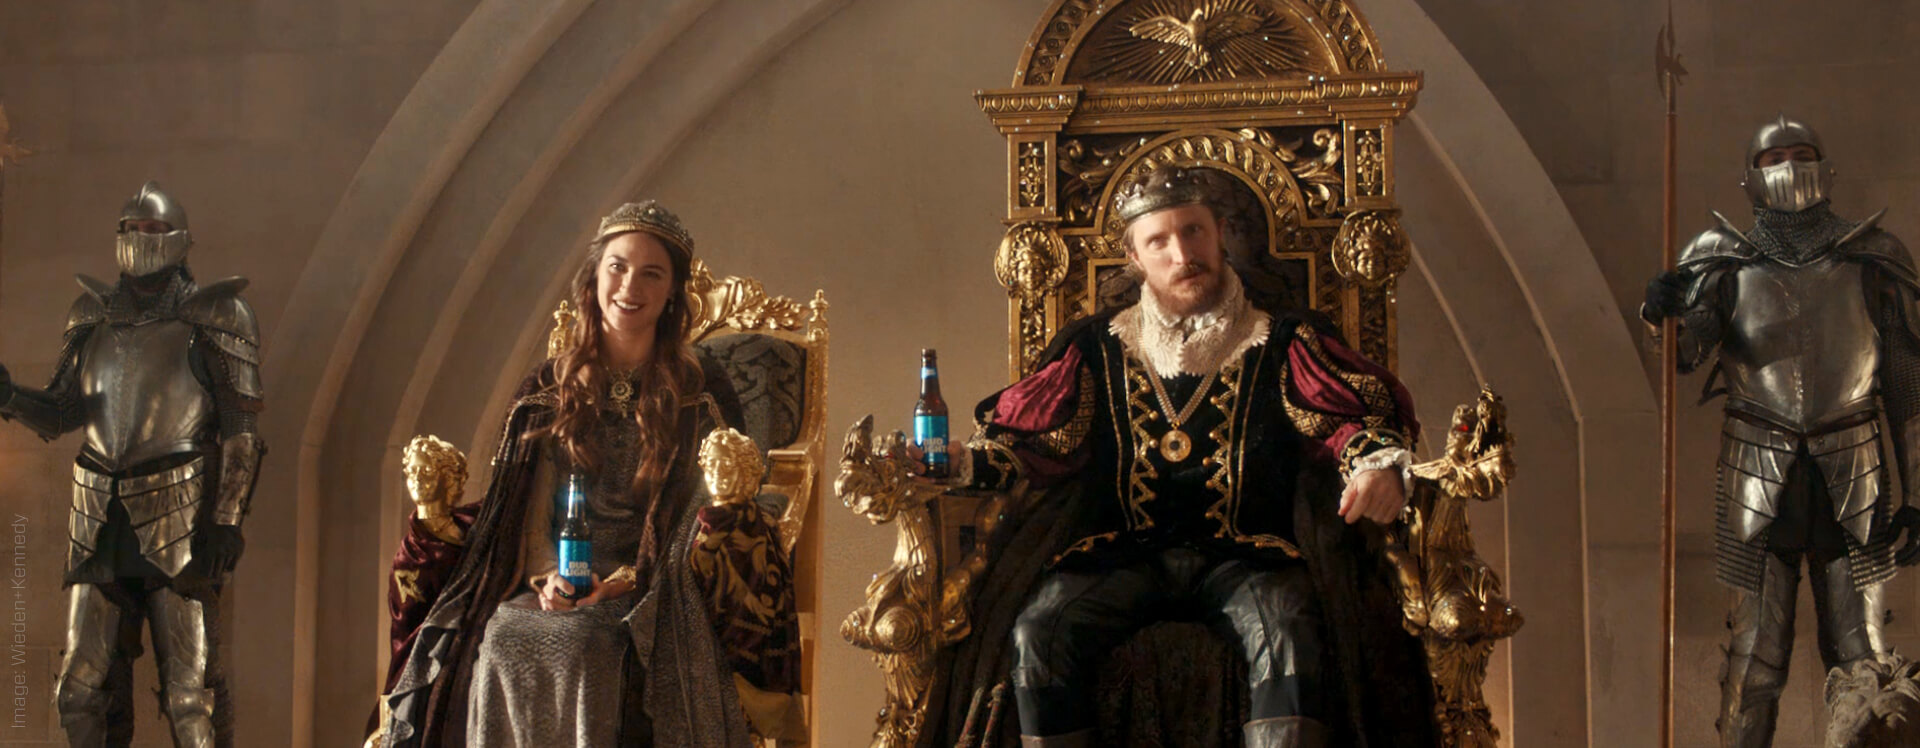 Bud light advertisement image, King and Queen drinking bud light while sitting on a throne